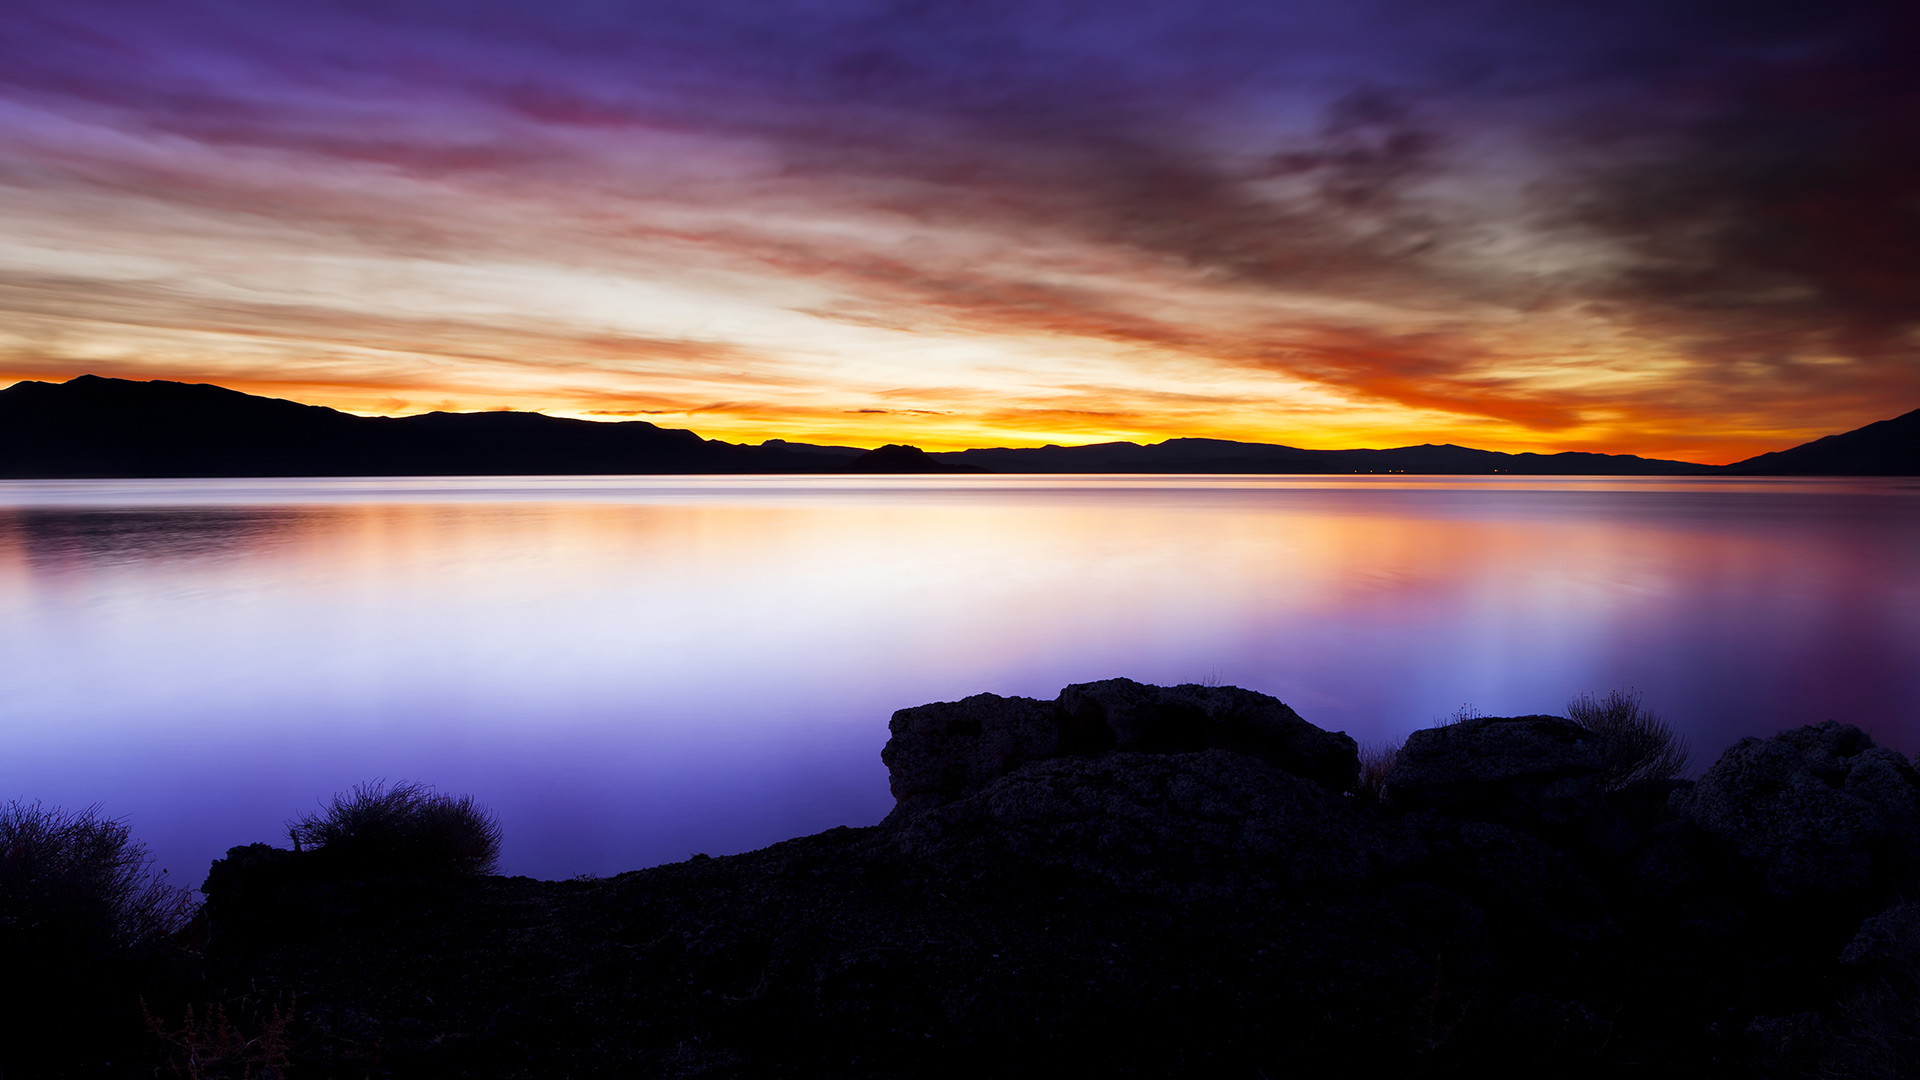 A sunset over Pyramid Lake in Reno, Nevada